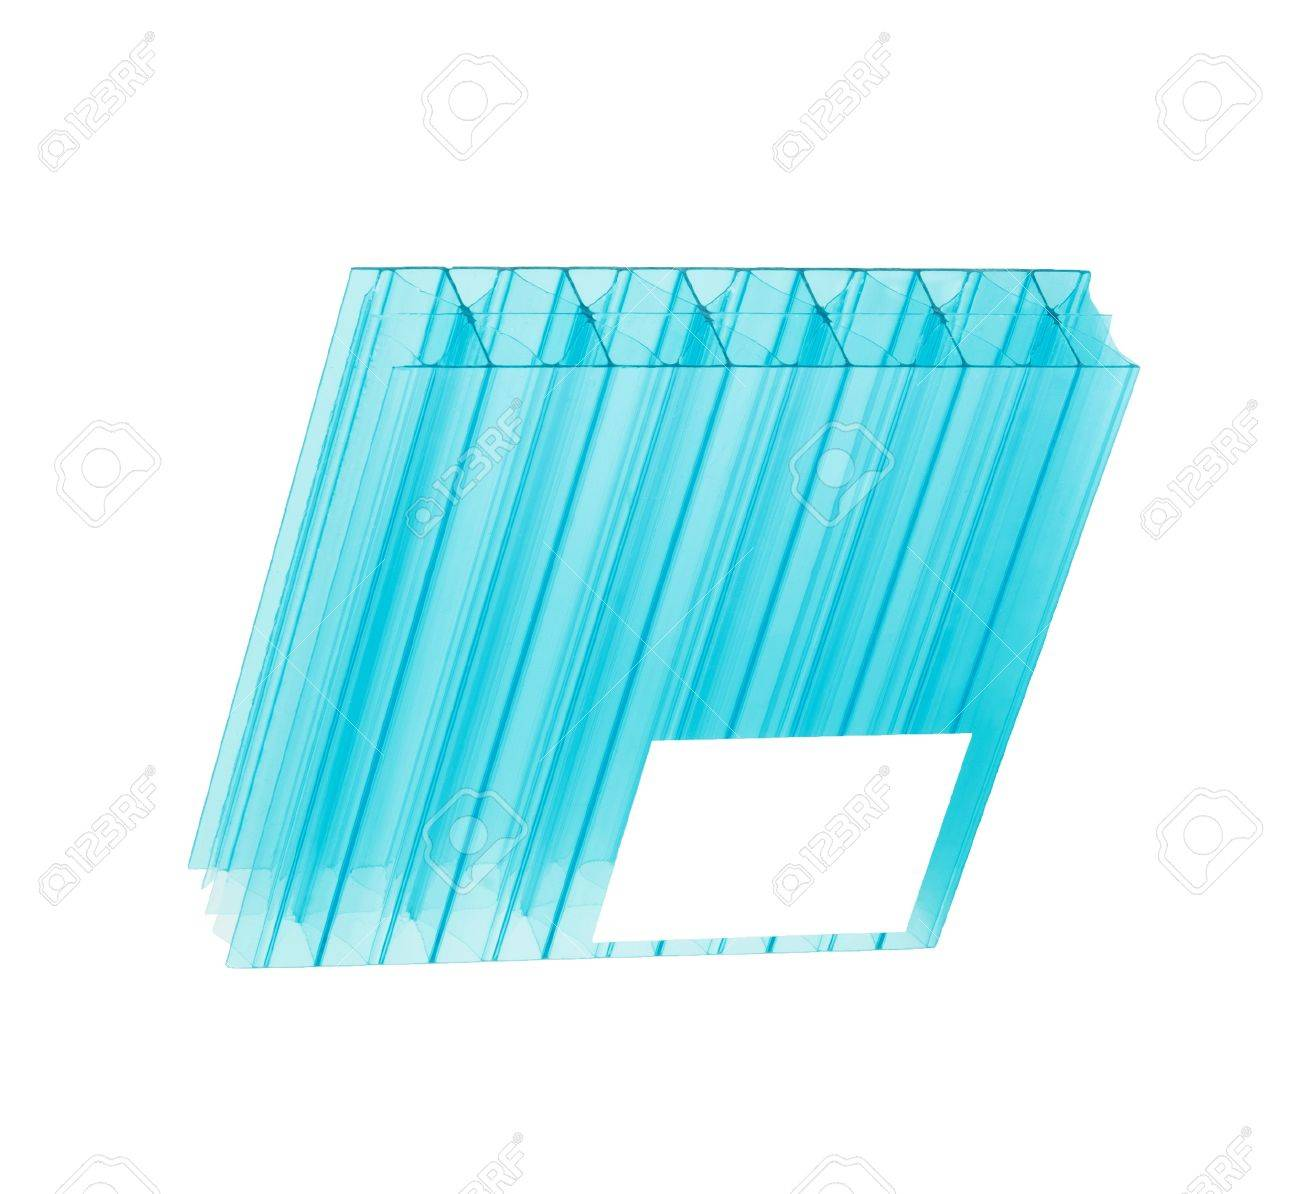 Blue Color Polycarbonate Sheet Isolated On White Background Stock ...